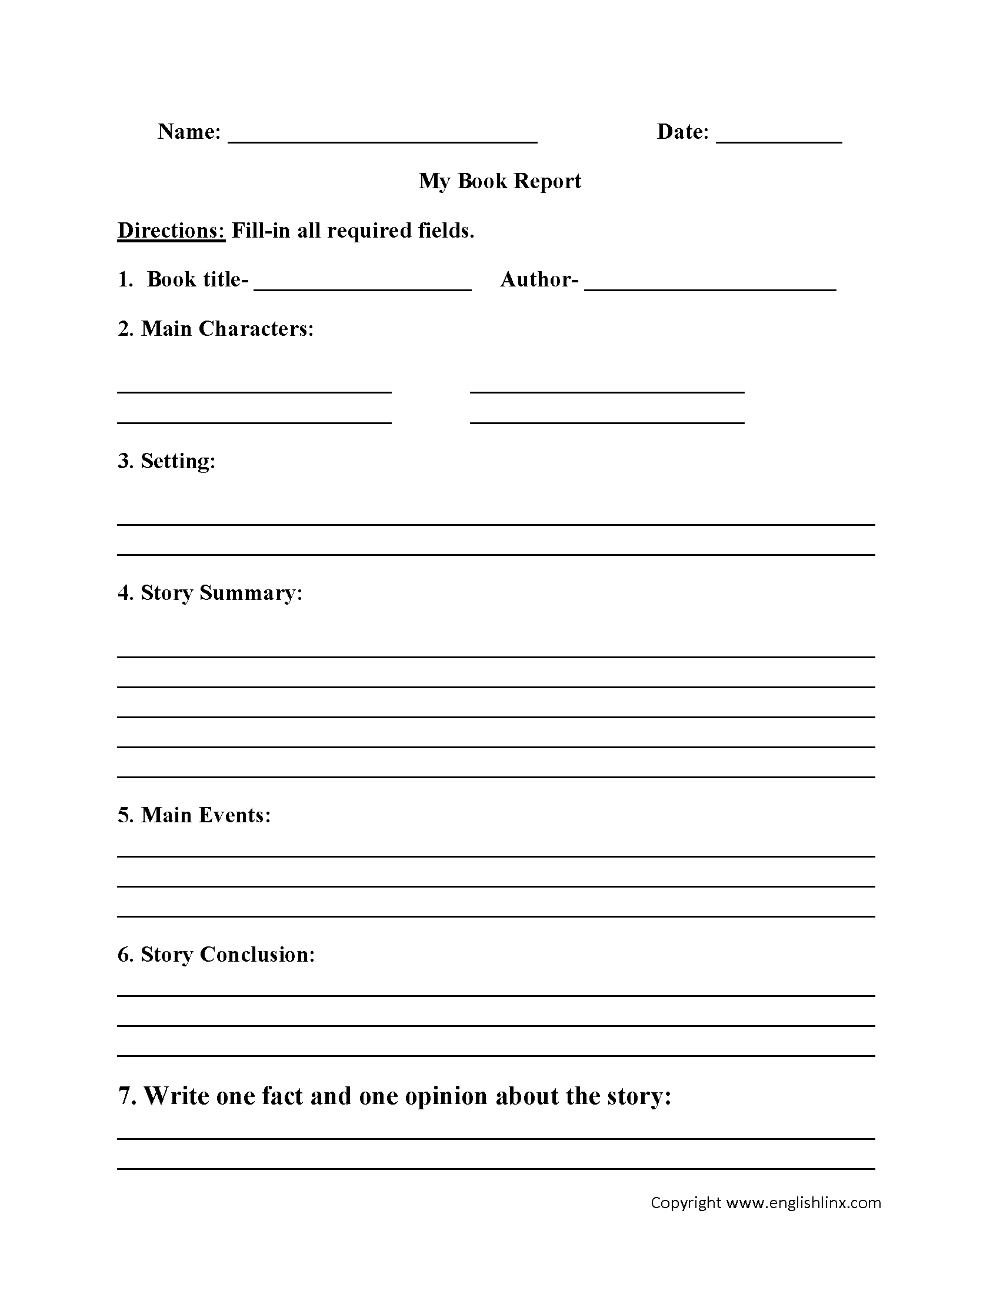 Book report outlines for middle school cheap content ghostwriter for hire usa